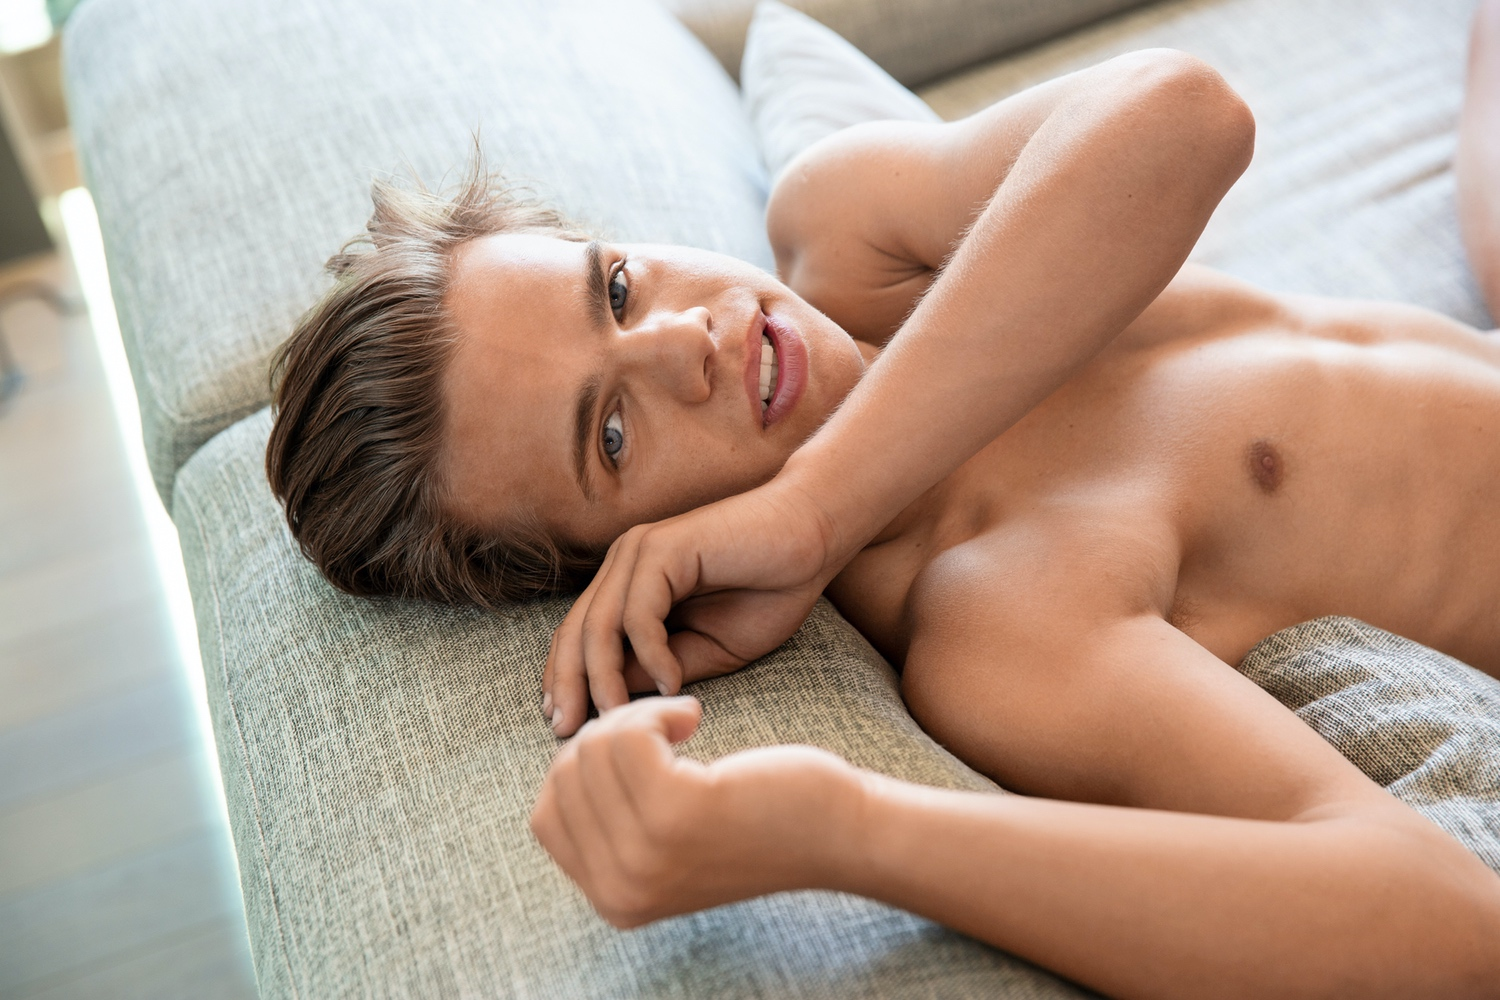 BelAmi – Malachi Harvey